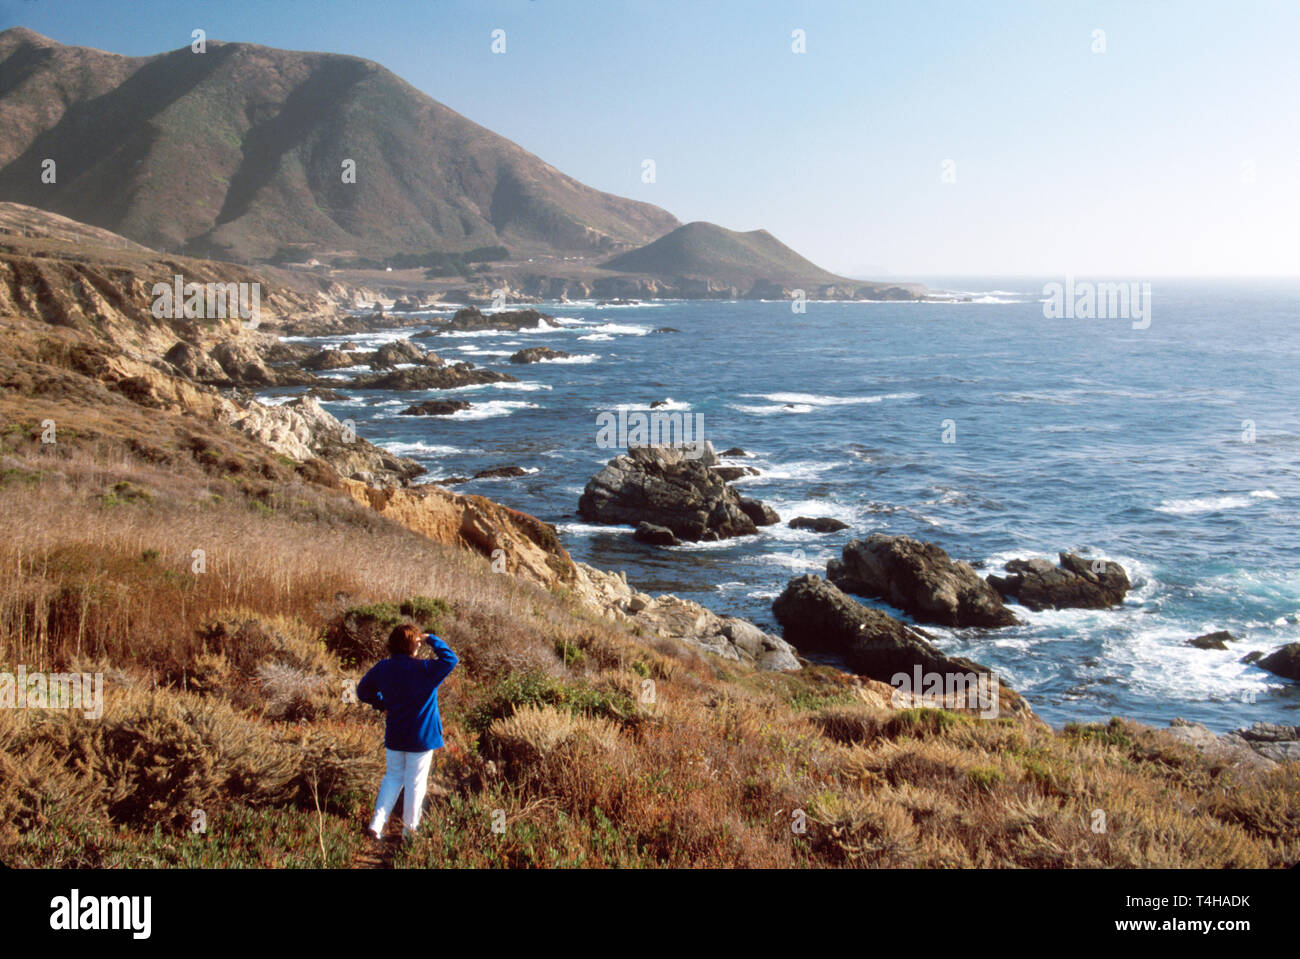 California Monterey County Big Sur Highway south of Carmel Highlands - Stock Image